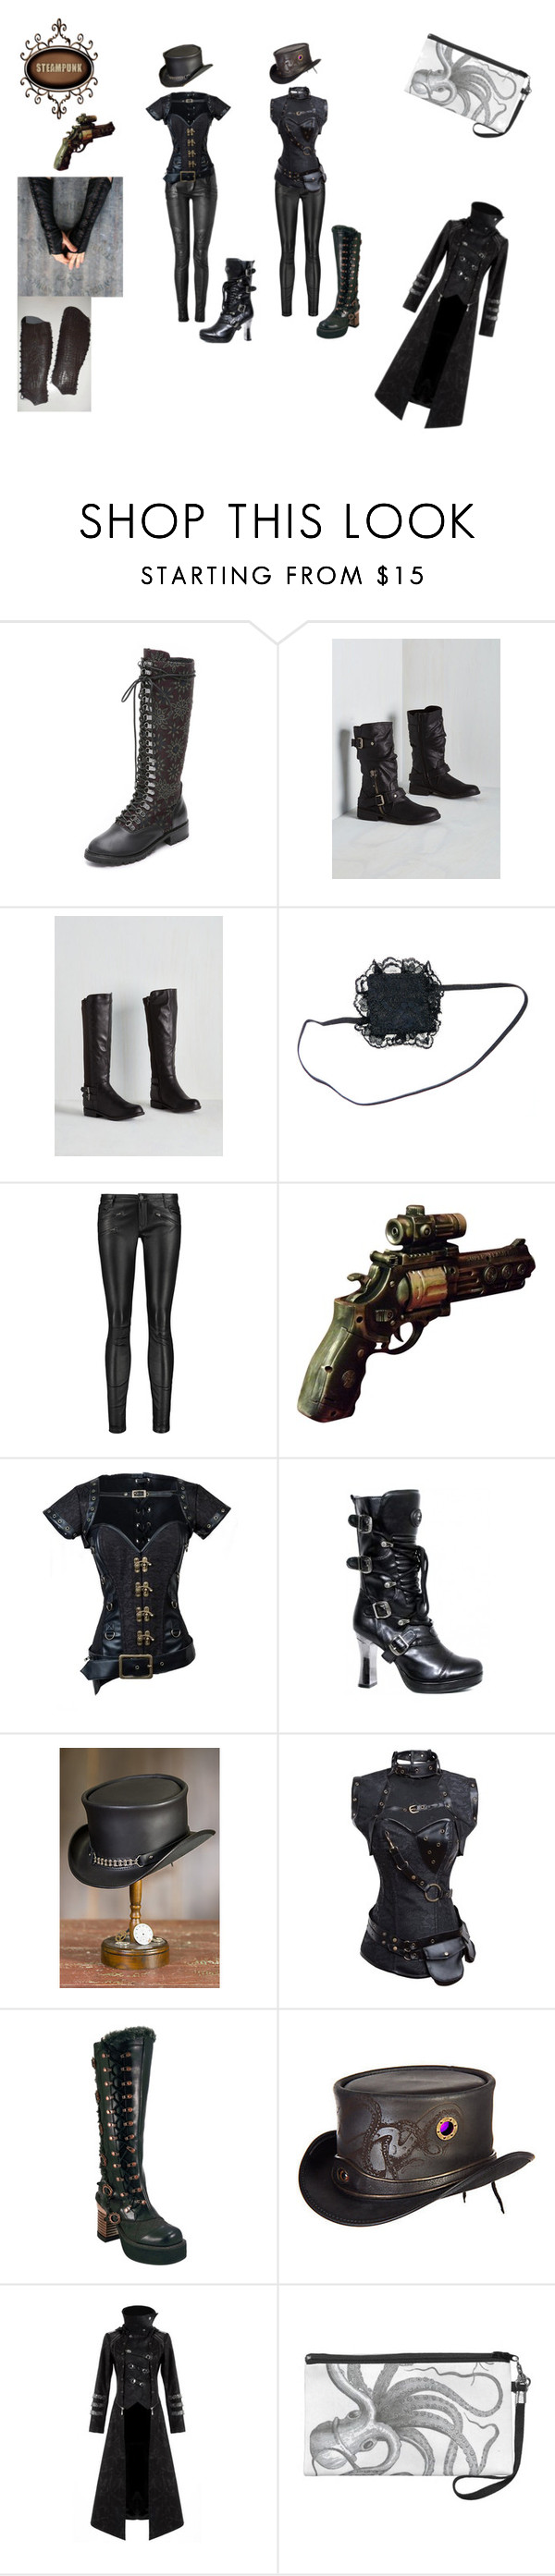 """""""STEAMPUNK: Warioress - Black style"""" by misshollowpointslug ❤ liked on Polyvore featuring Alice + Olivia, Balmain, Maje, Retrò, Overland Sheepskin Co., Beston, Hooded Trench and steampunk"""